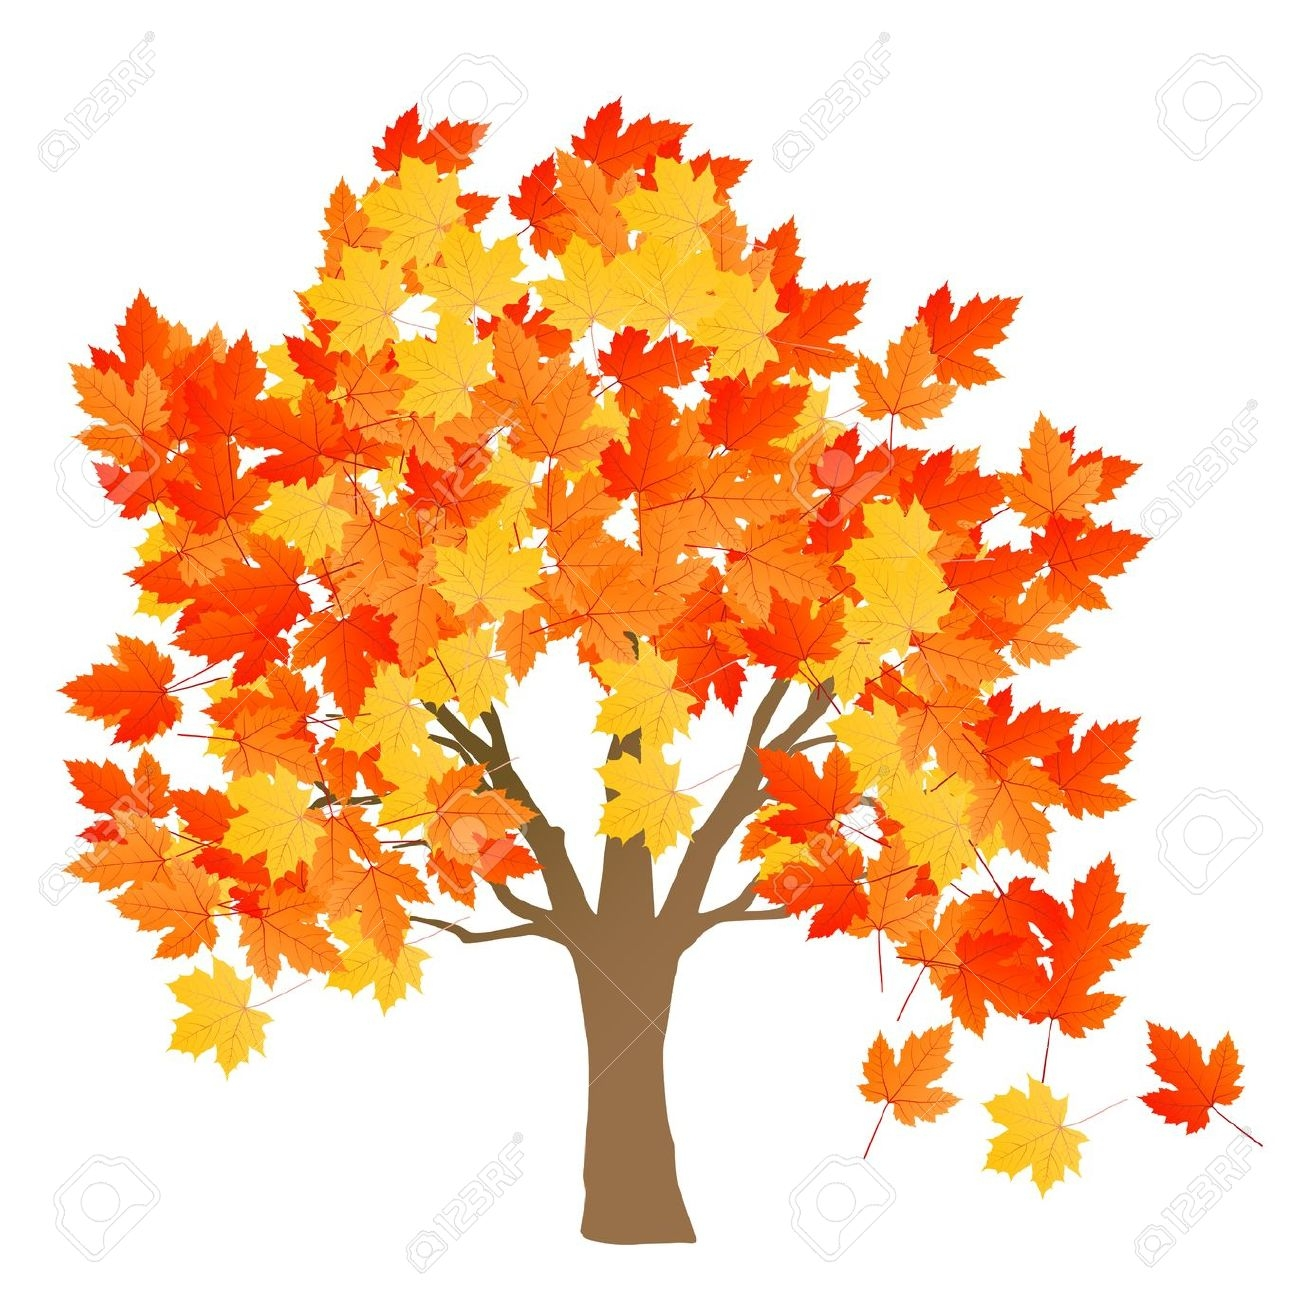 October clipart transparent background.